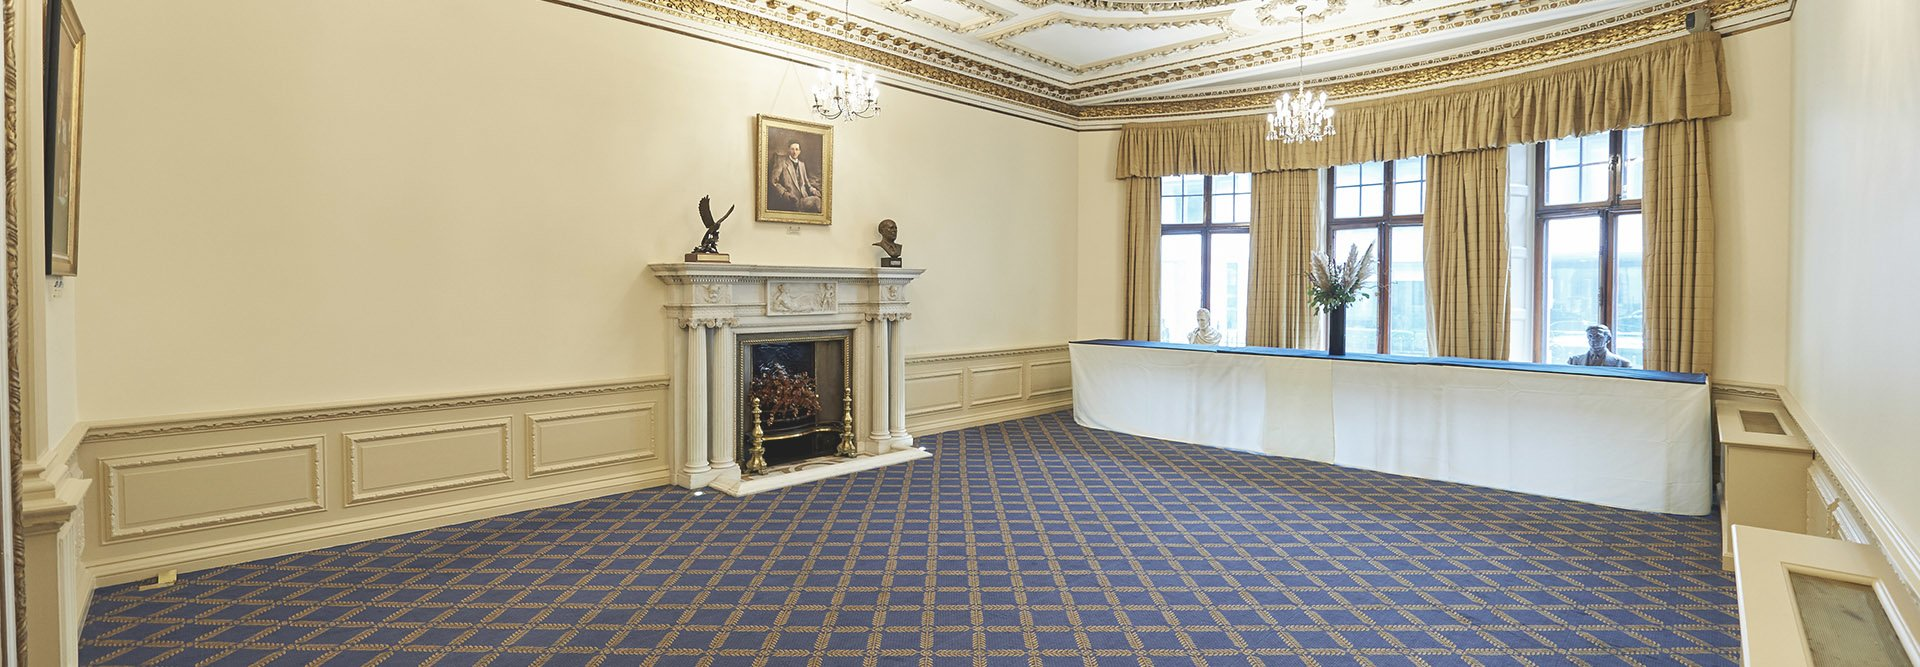 The Marshall of Cambridge room empty with fireplace, portraits and bay windows